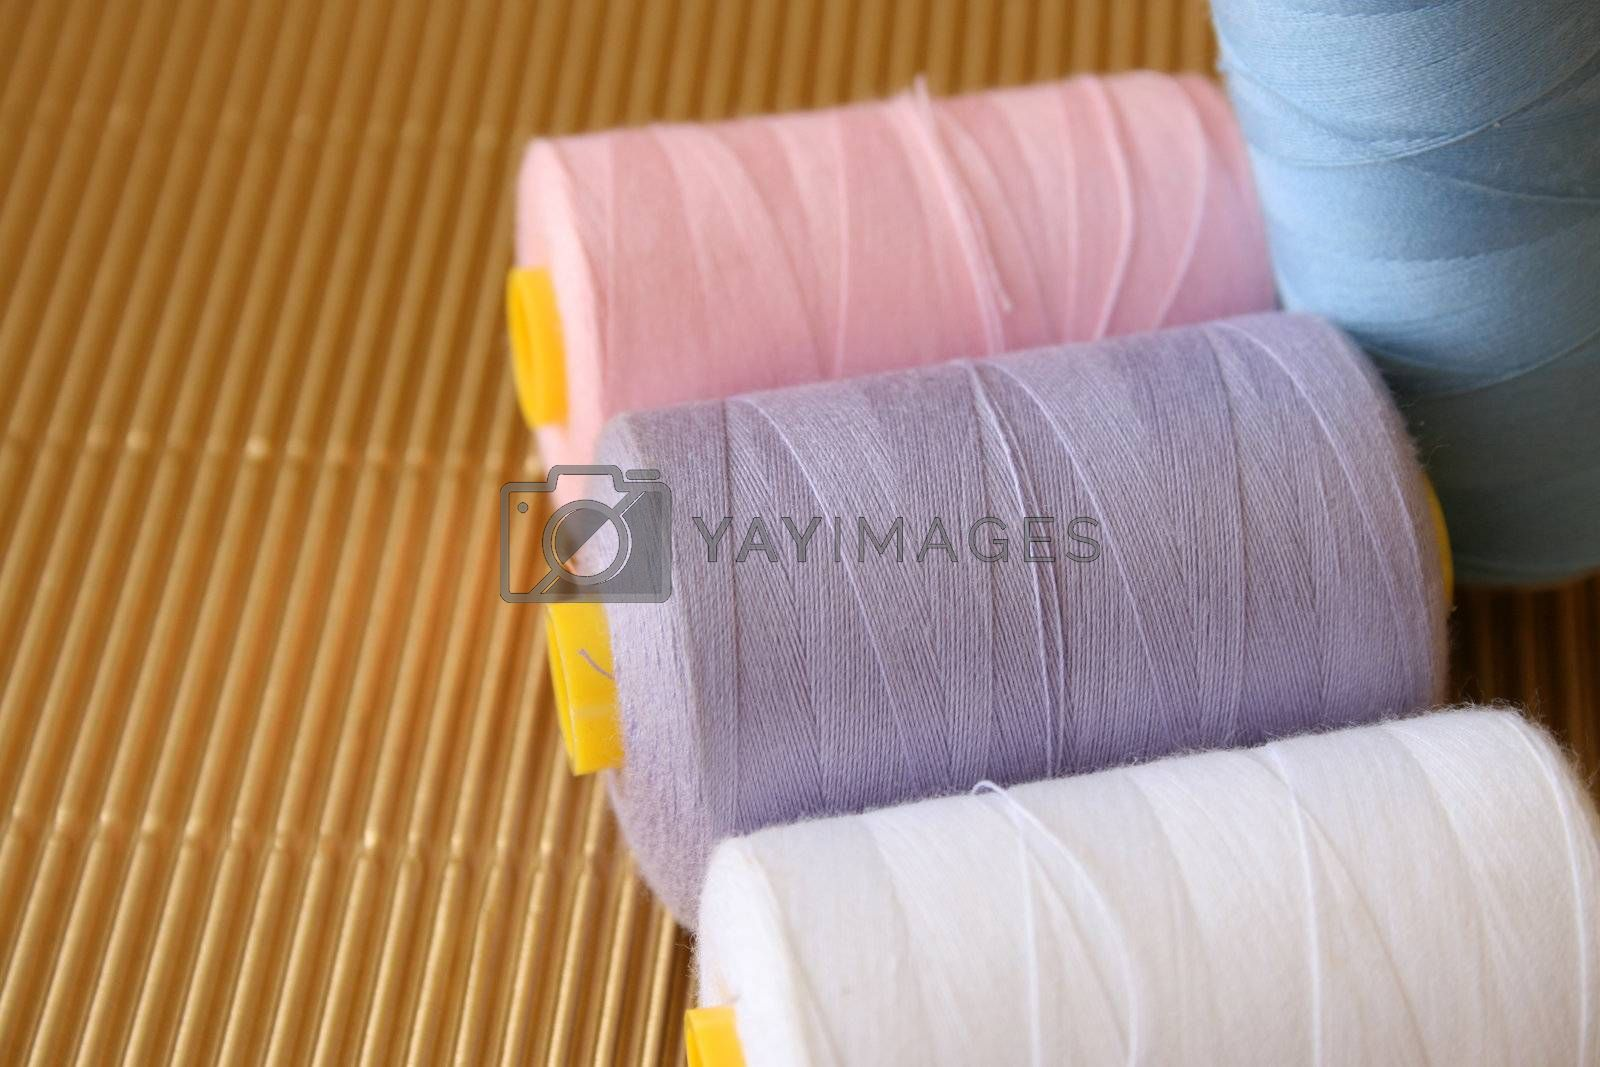 Cotton in various colors of white, purple, pink and blue